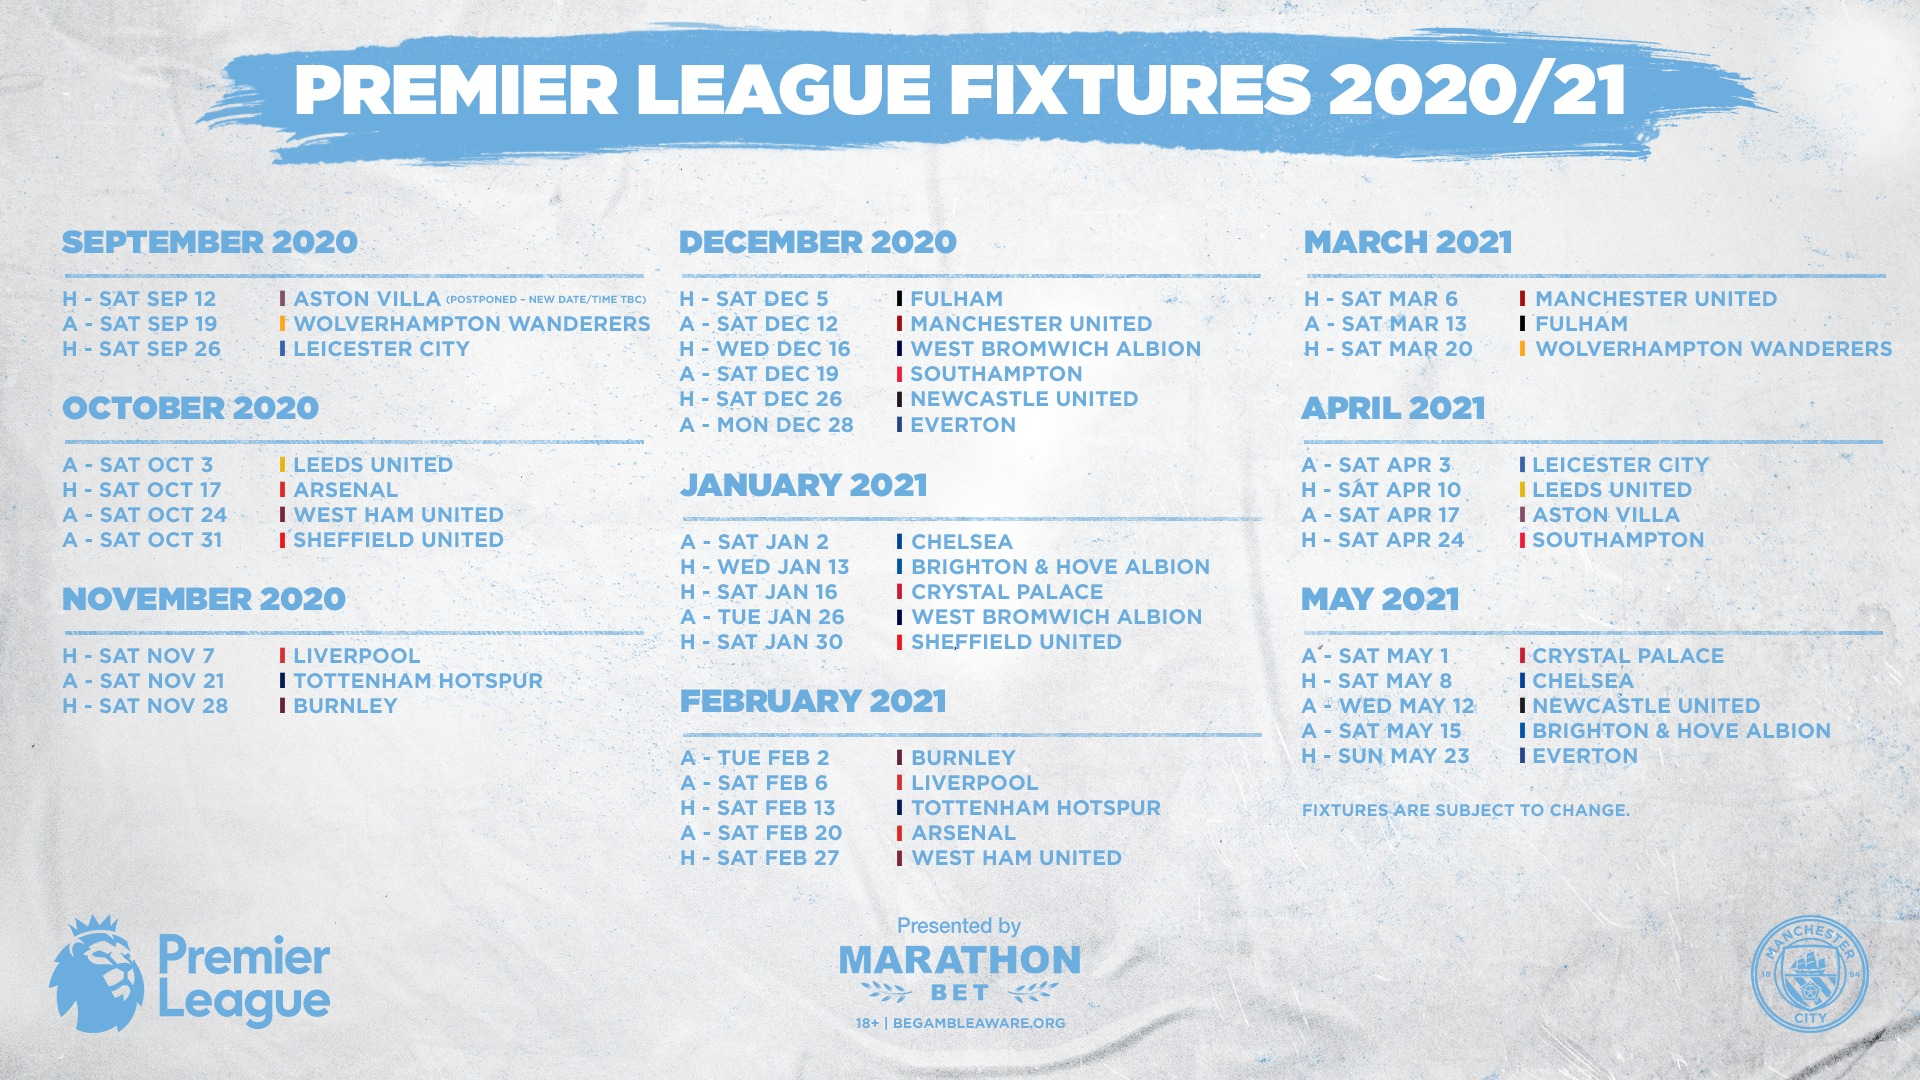 Manchester City On Twitter Our 2020 21 Premierleague Fixtures In Full Which Game Do You Look For First Marathonbet Mancity Https T Co Axa0kld5re Https T Co Psgmfappfg